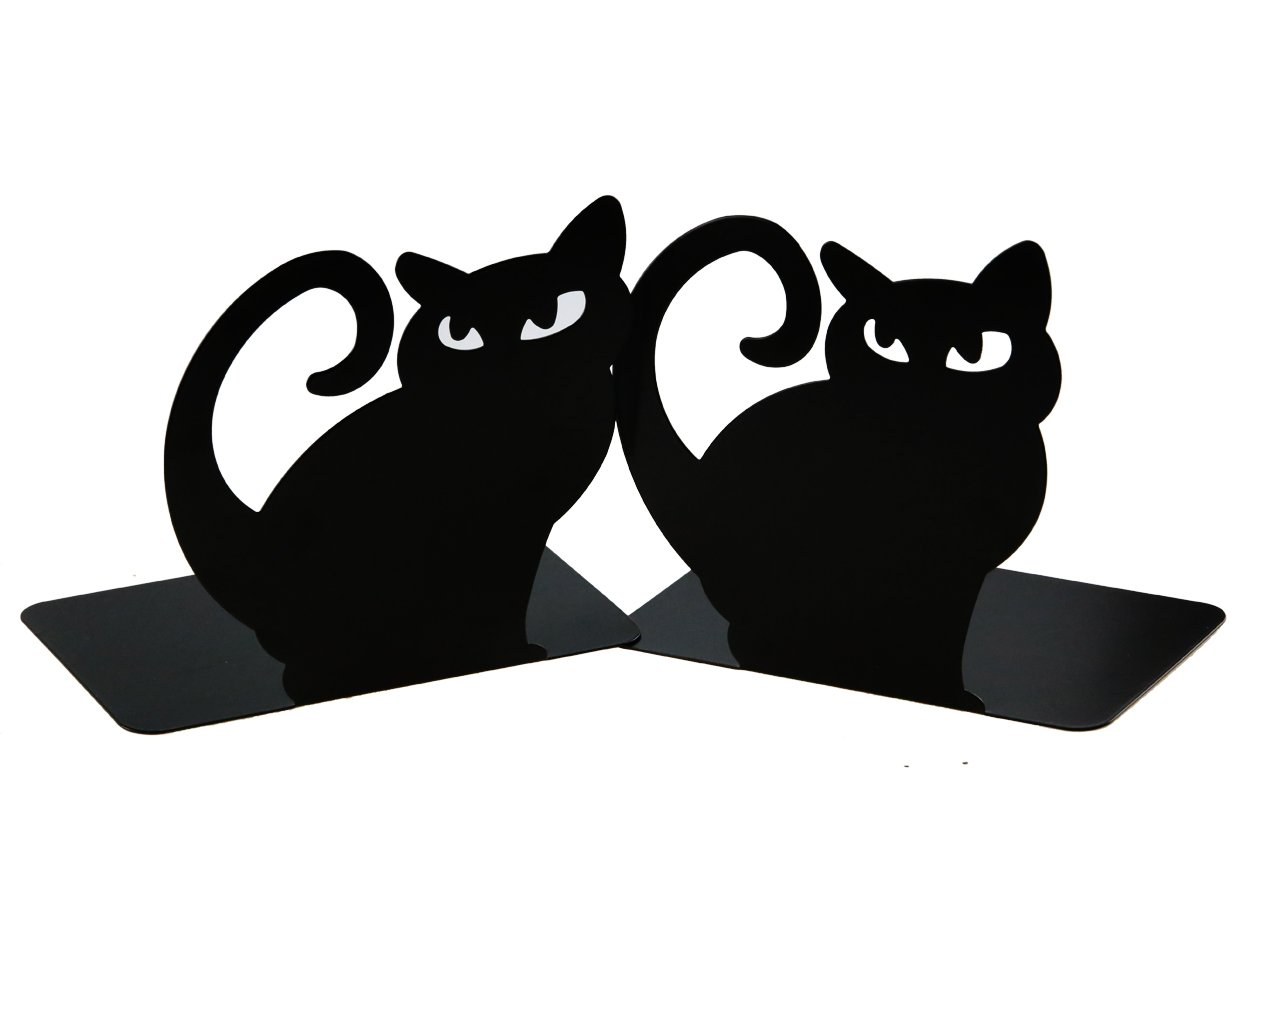 Cute Vivid Lovely Persian Cat Book Organizer Metal Bookends For Kids School Library Desk Study Home Office Decoration Gift (Black) by Apol (Image #4)